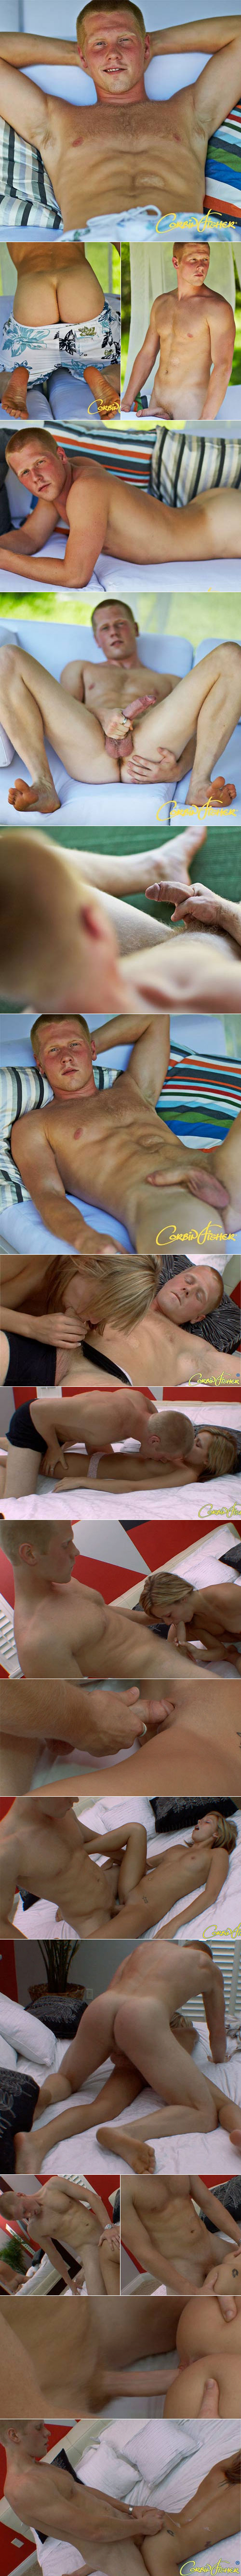 Amateur college sex corbin all became